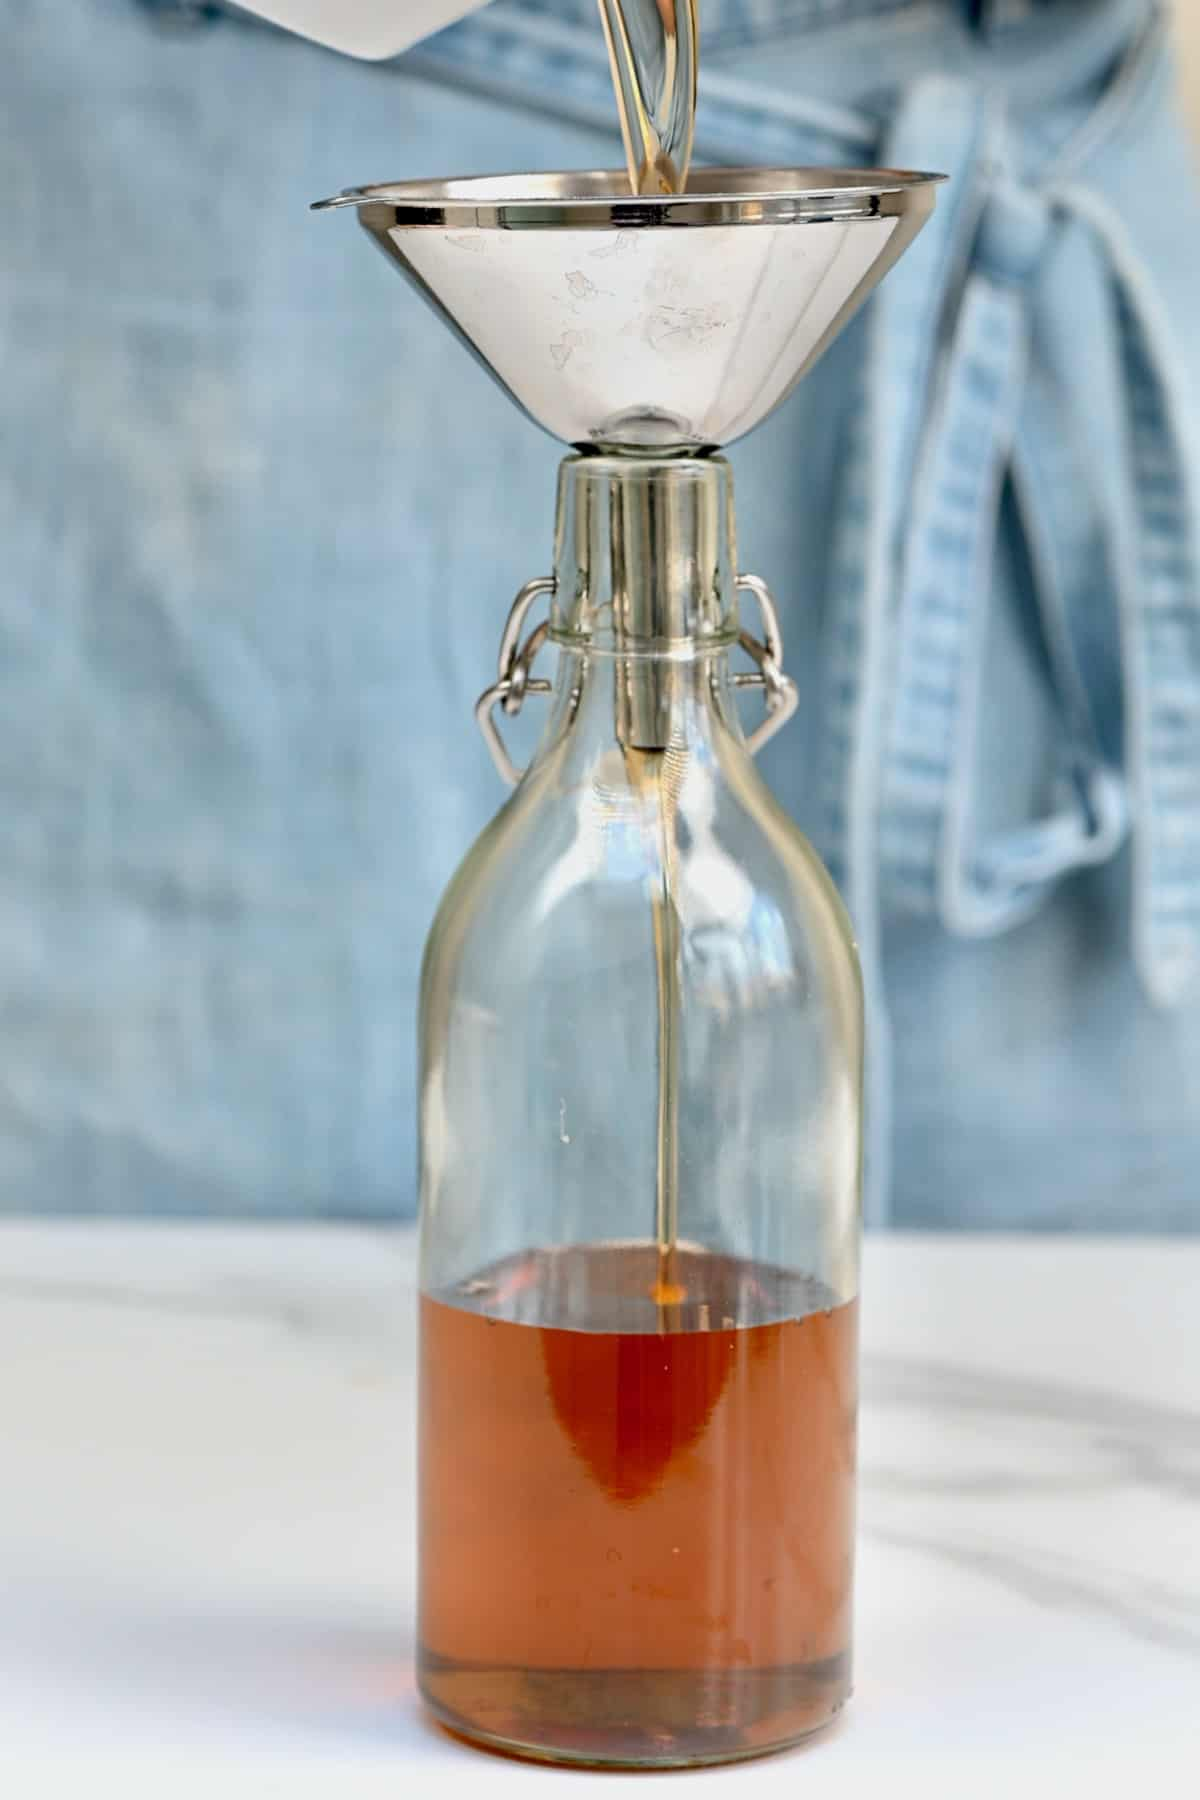 Pouring simple syrup in a bottle